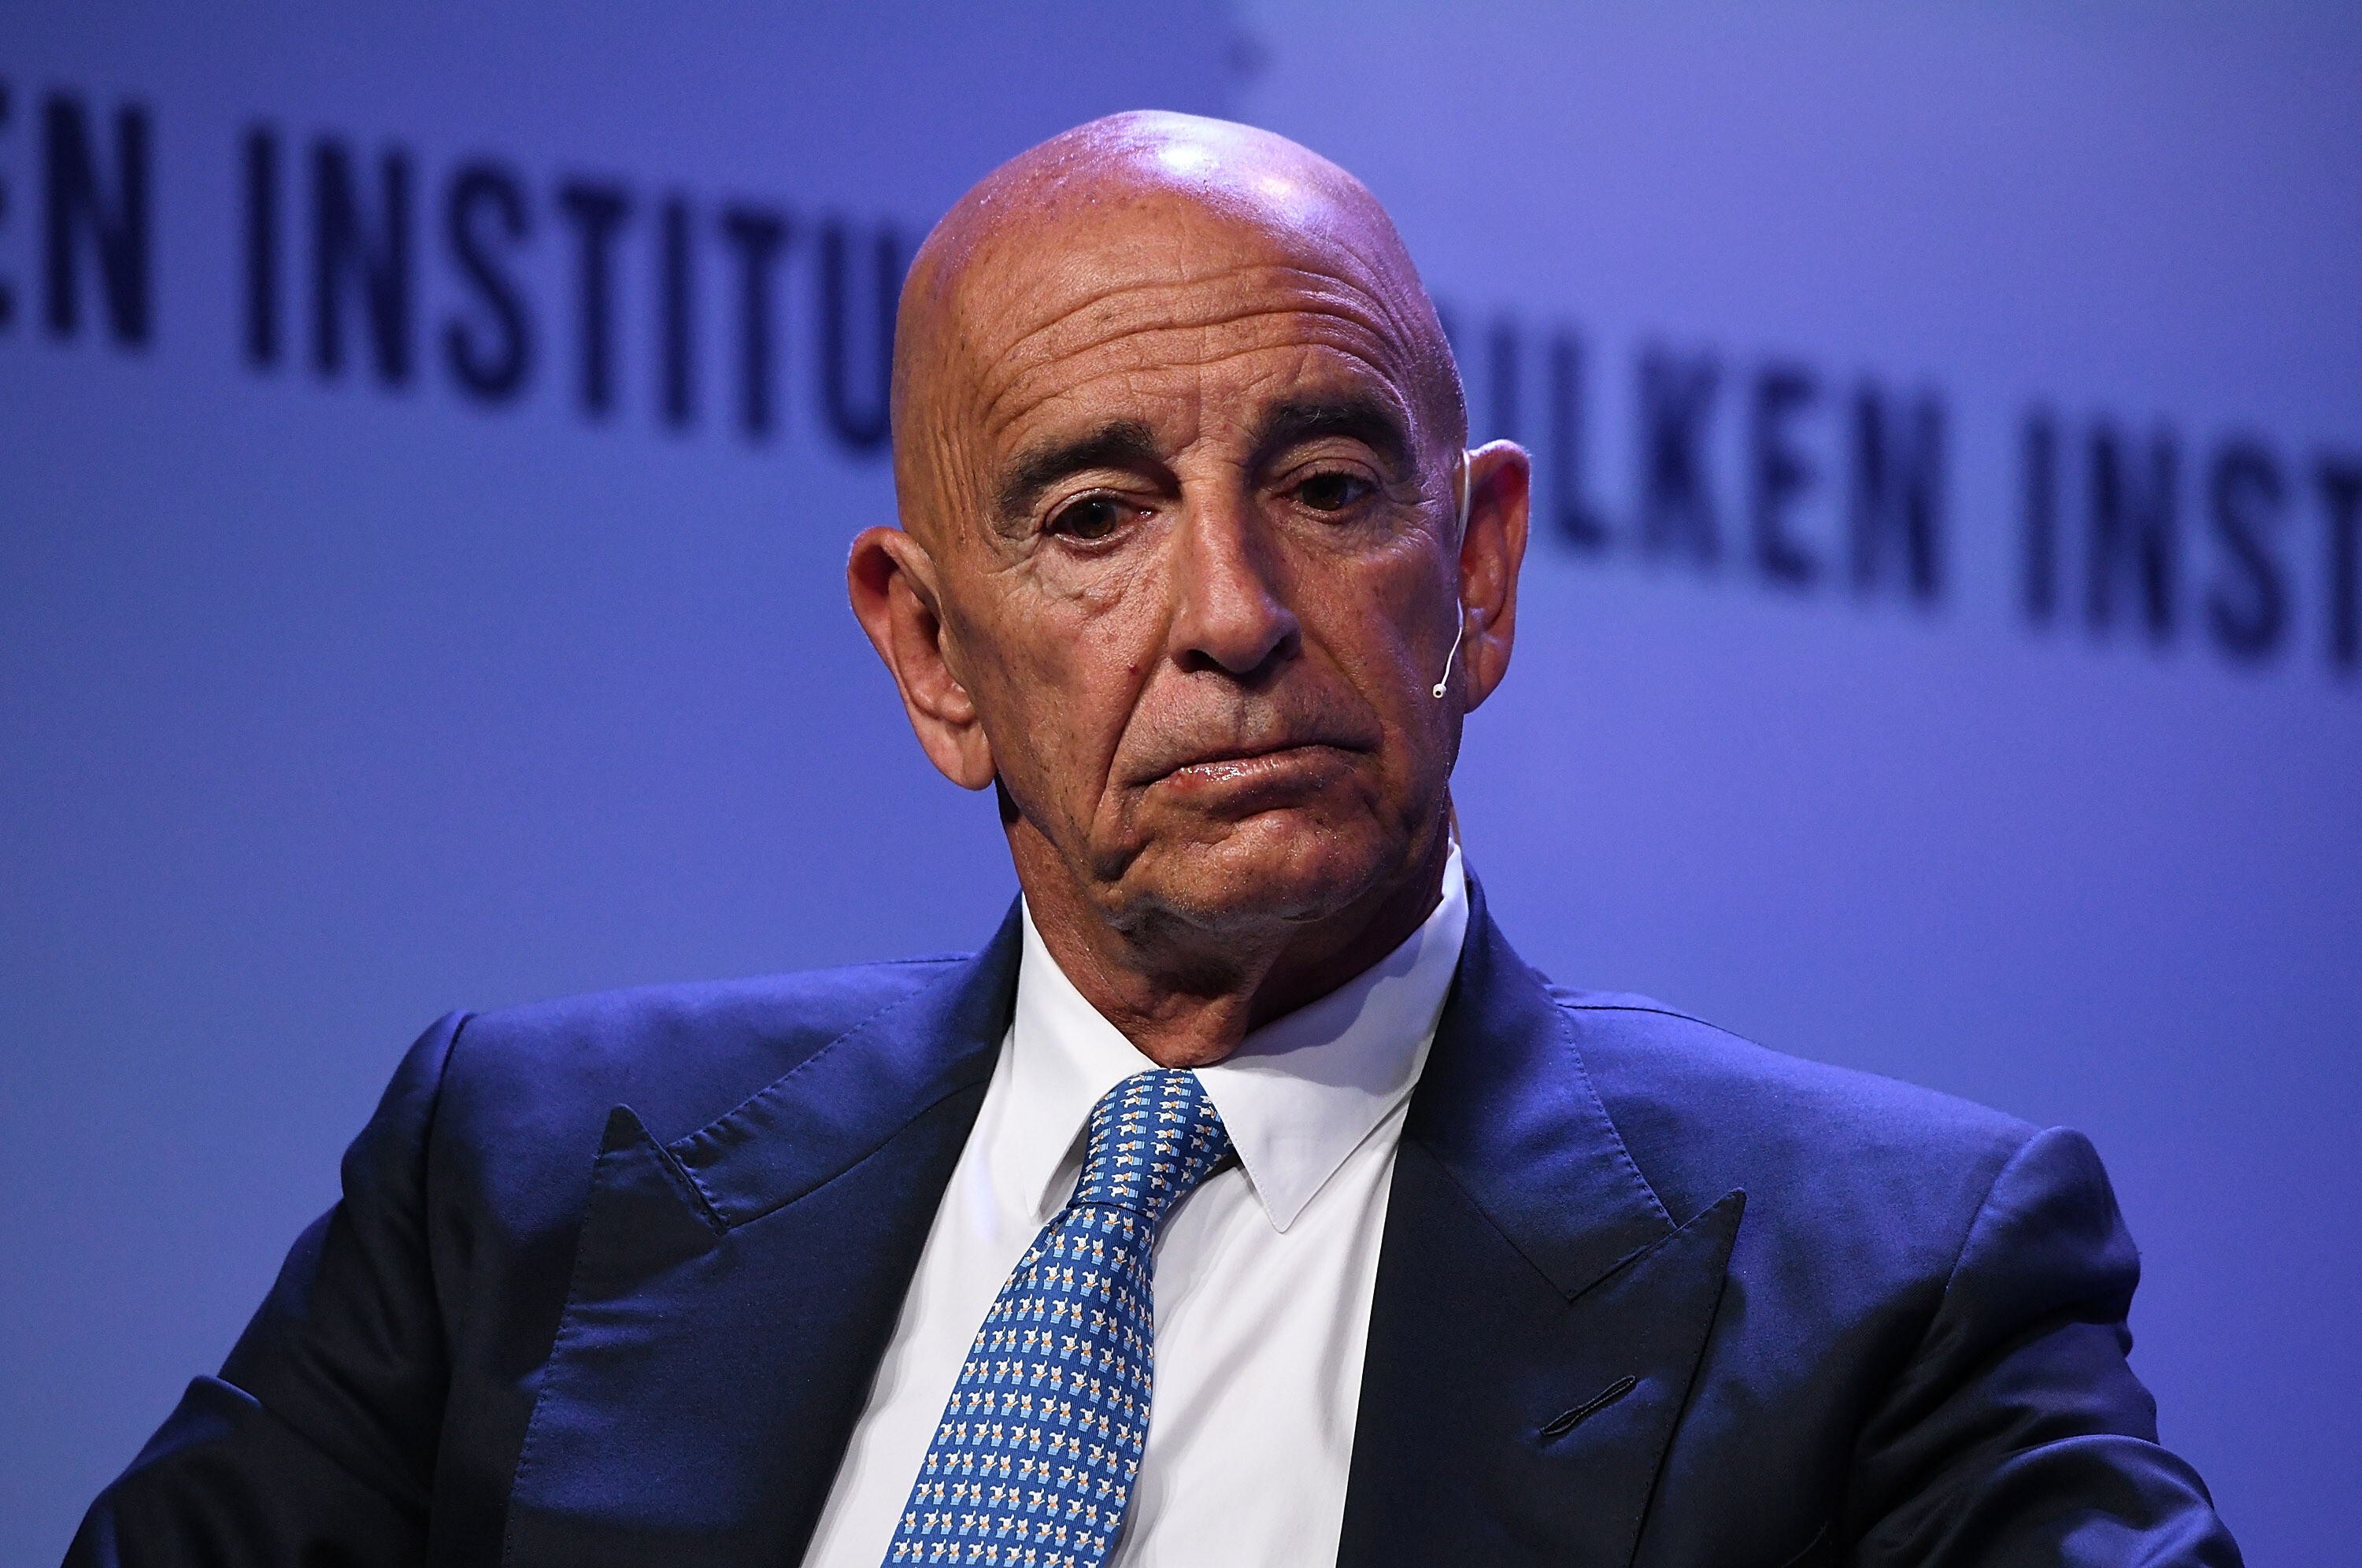 Tom Barrack and the influence he had in Trump's world